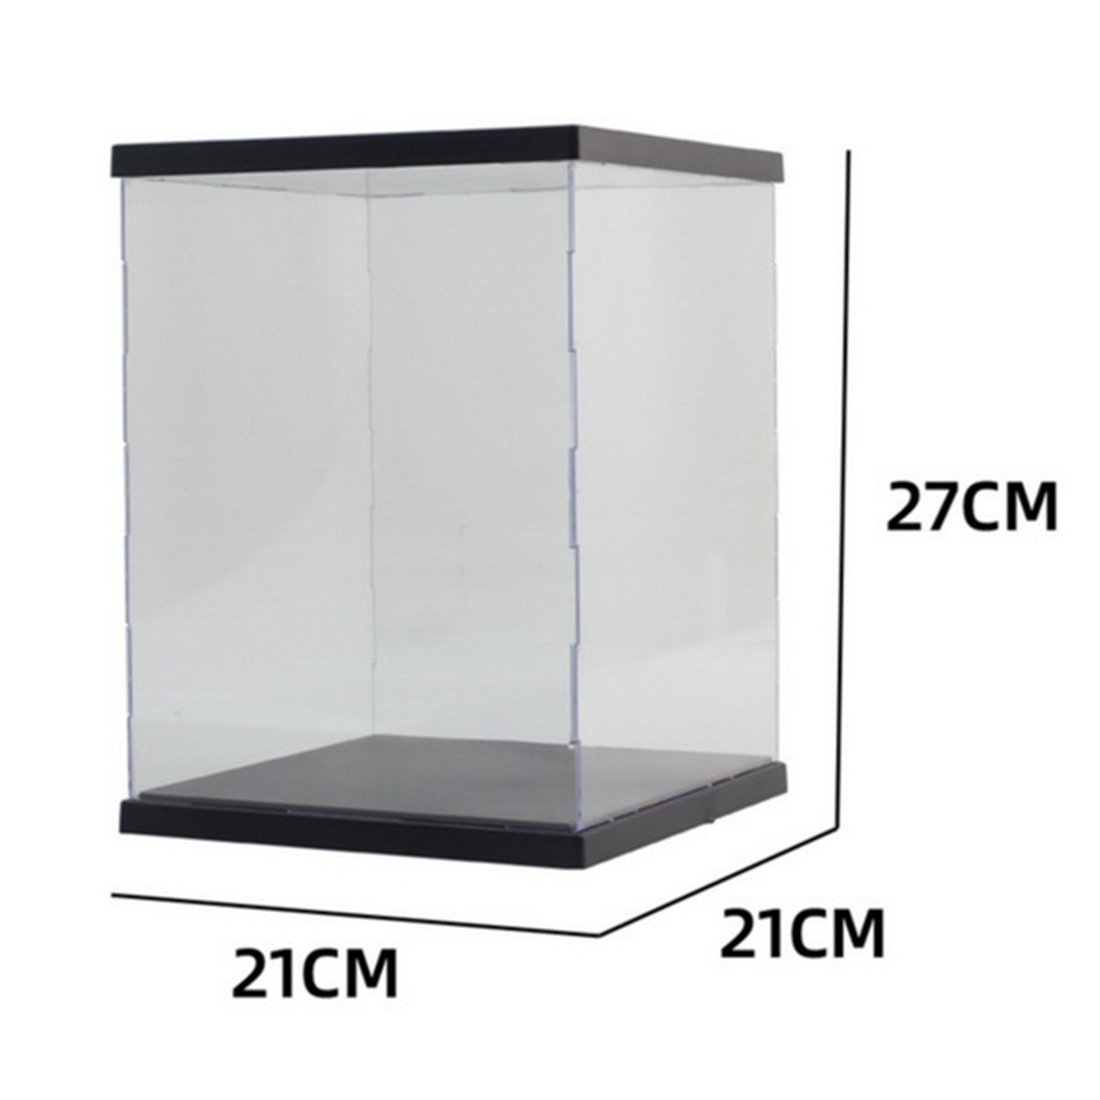 21 x 21 x 27cm Dustproof Storage Display Showing Box Case With Light For MG RG <font><b>BB</b></font> For <font><b>Gundam</b></font> Model Action Figure Toy Accessories image